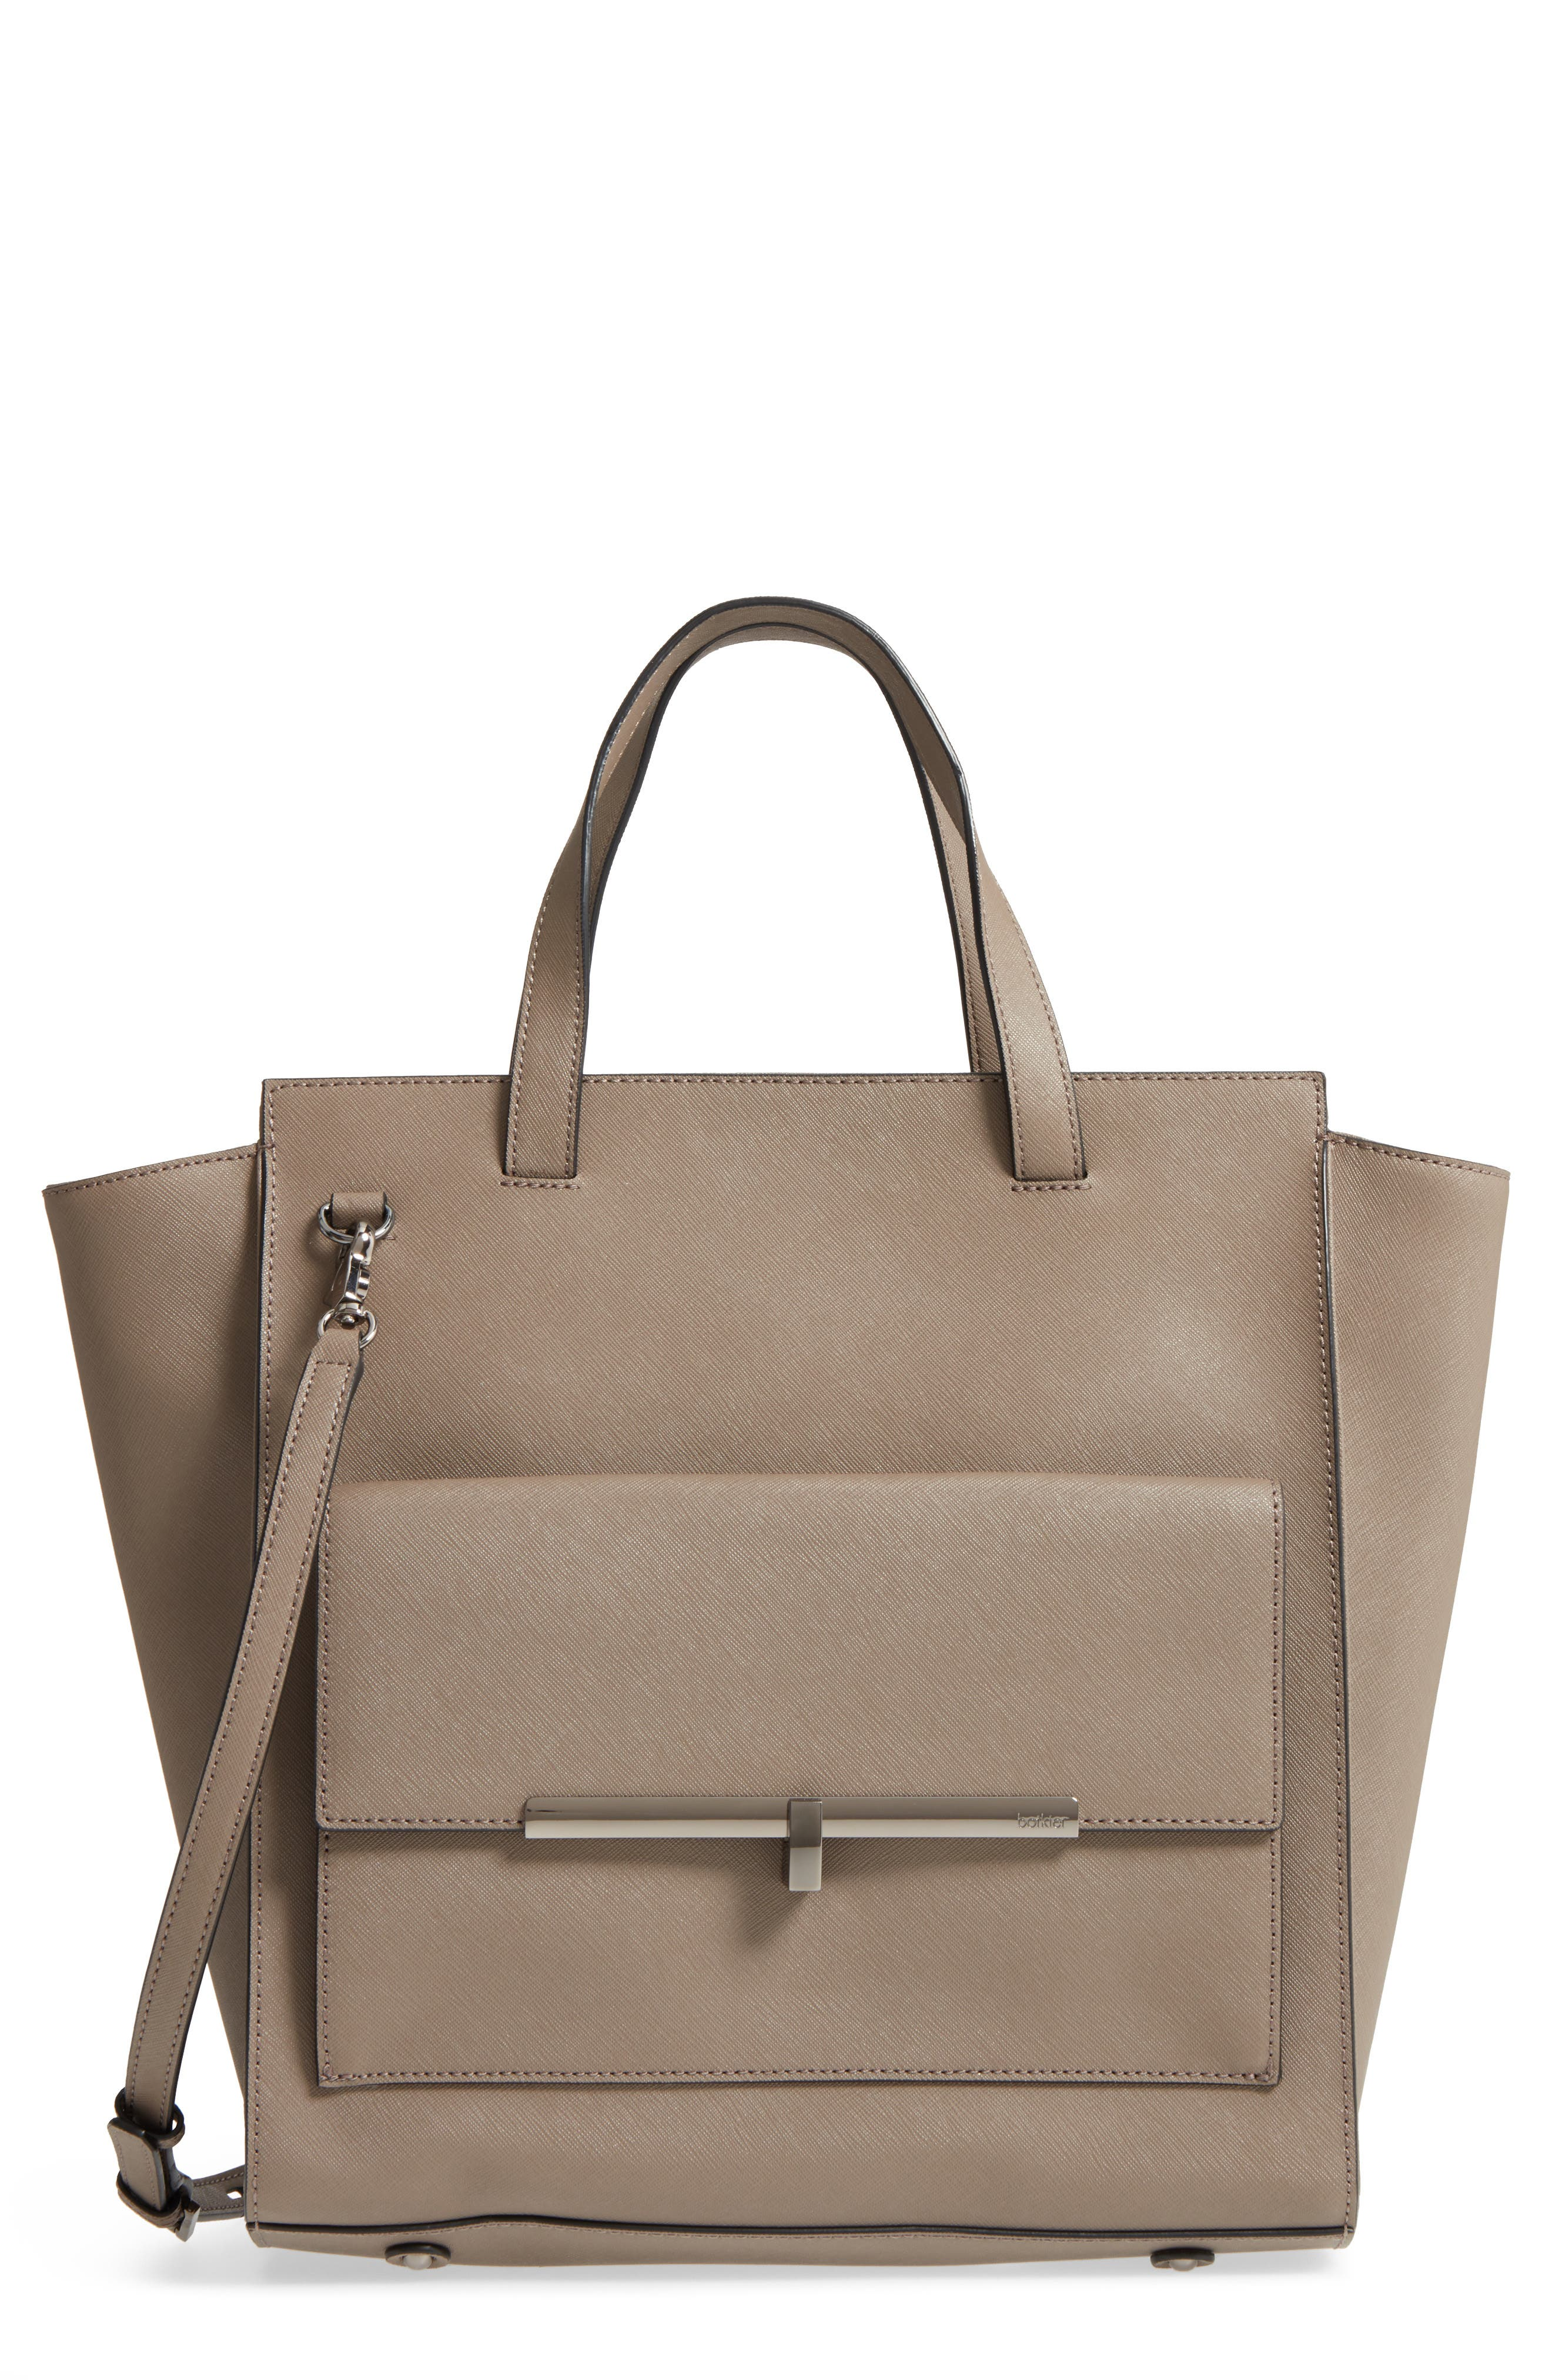 Alternate Image 1 Selected - Botkier Jagger Leather Tote